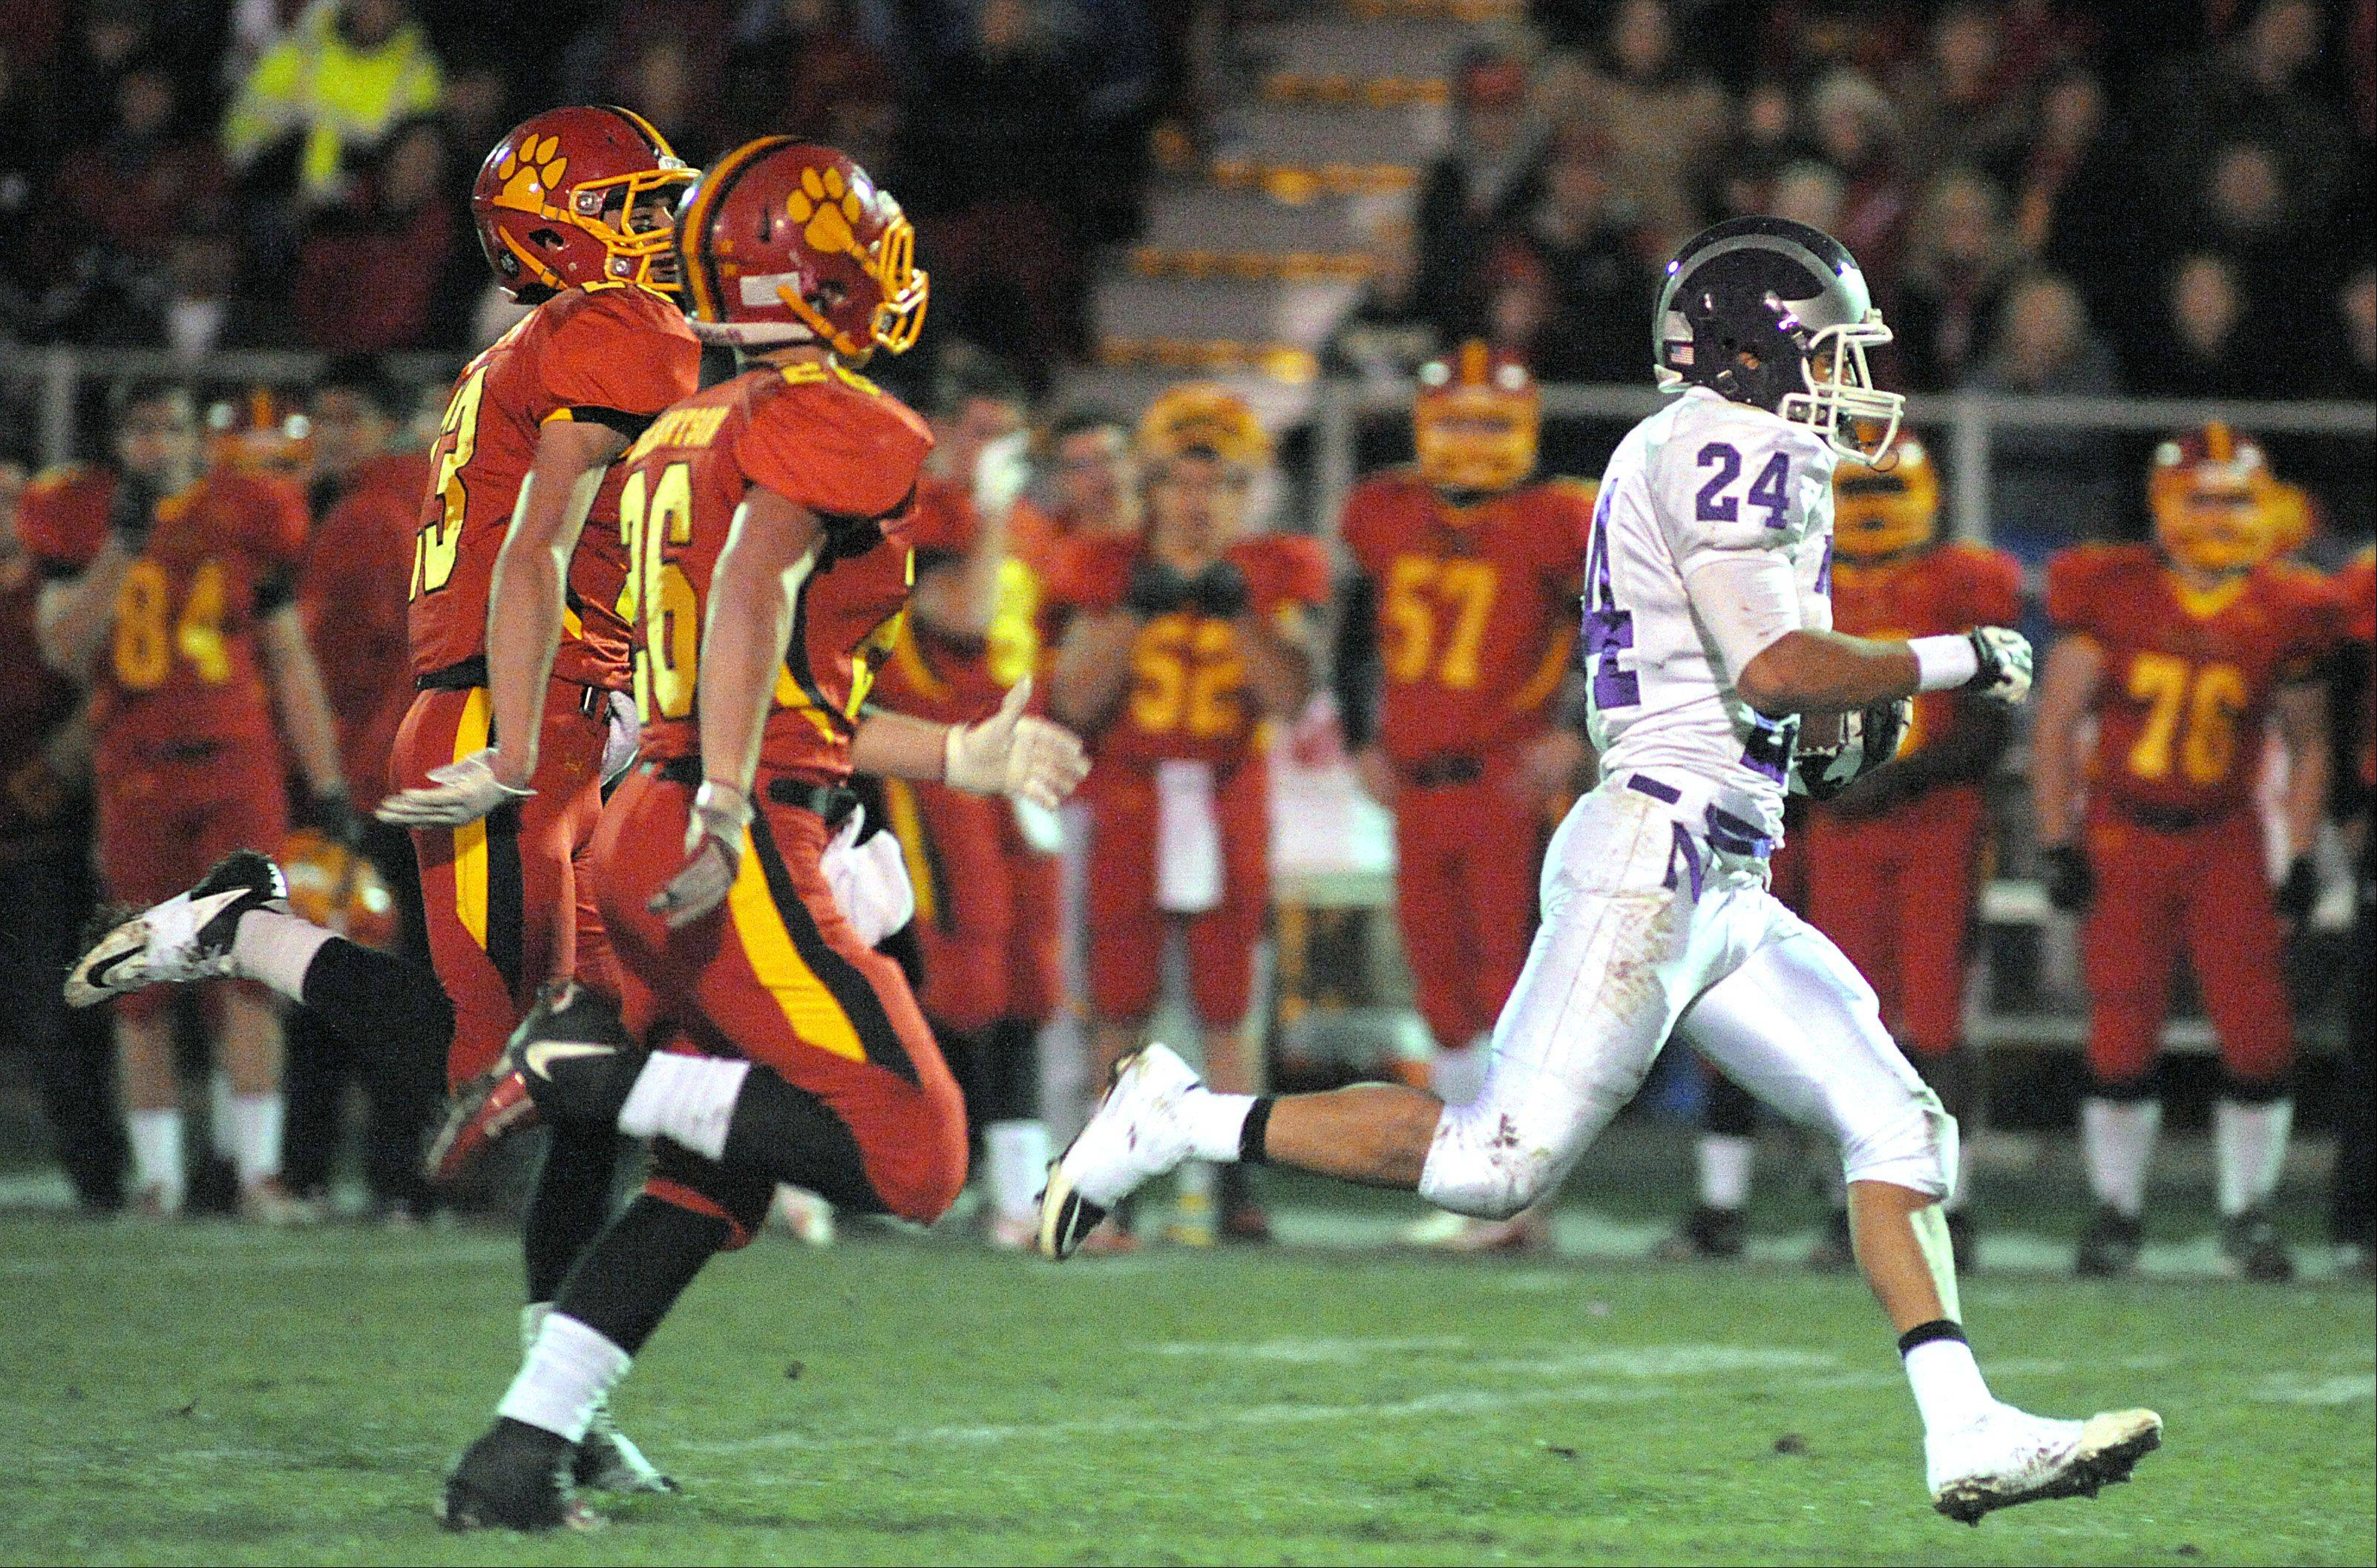 Downers Grove North's Brandon Salter runs for a touchdown in the fourth quarter of playoff game on Friday, October 26.